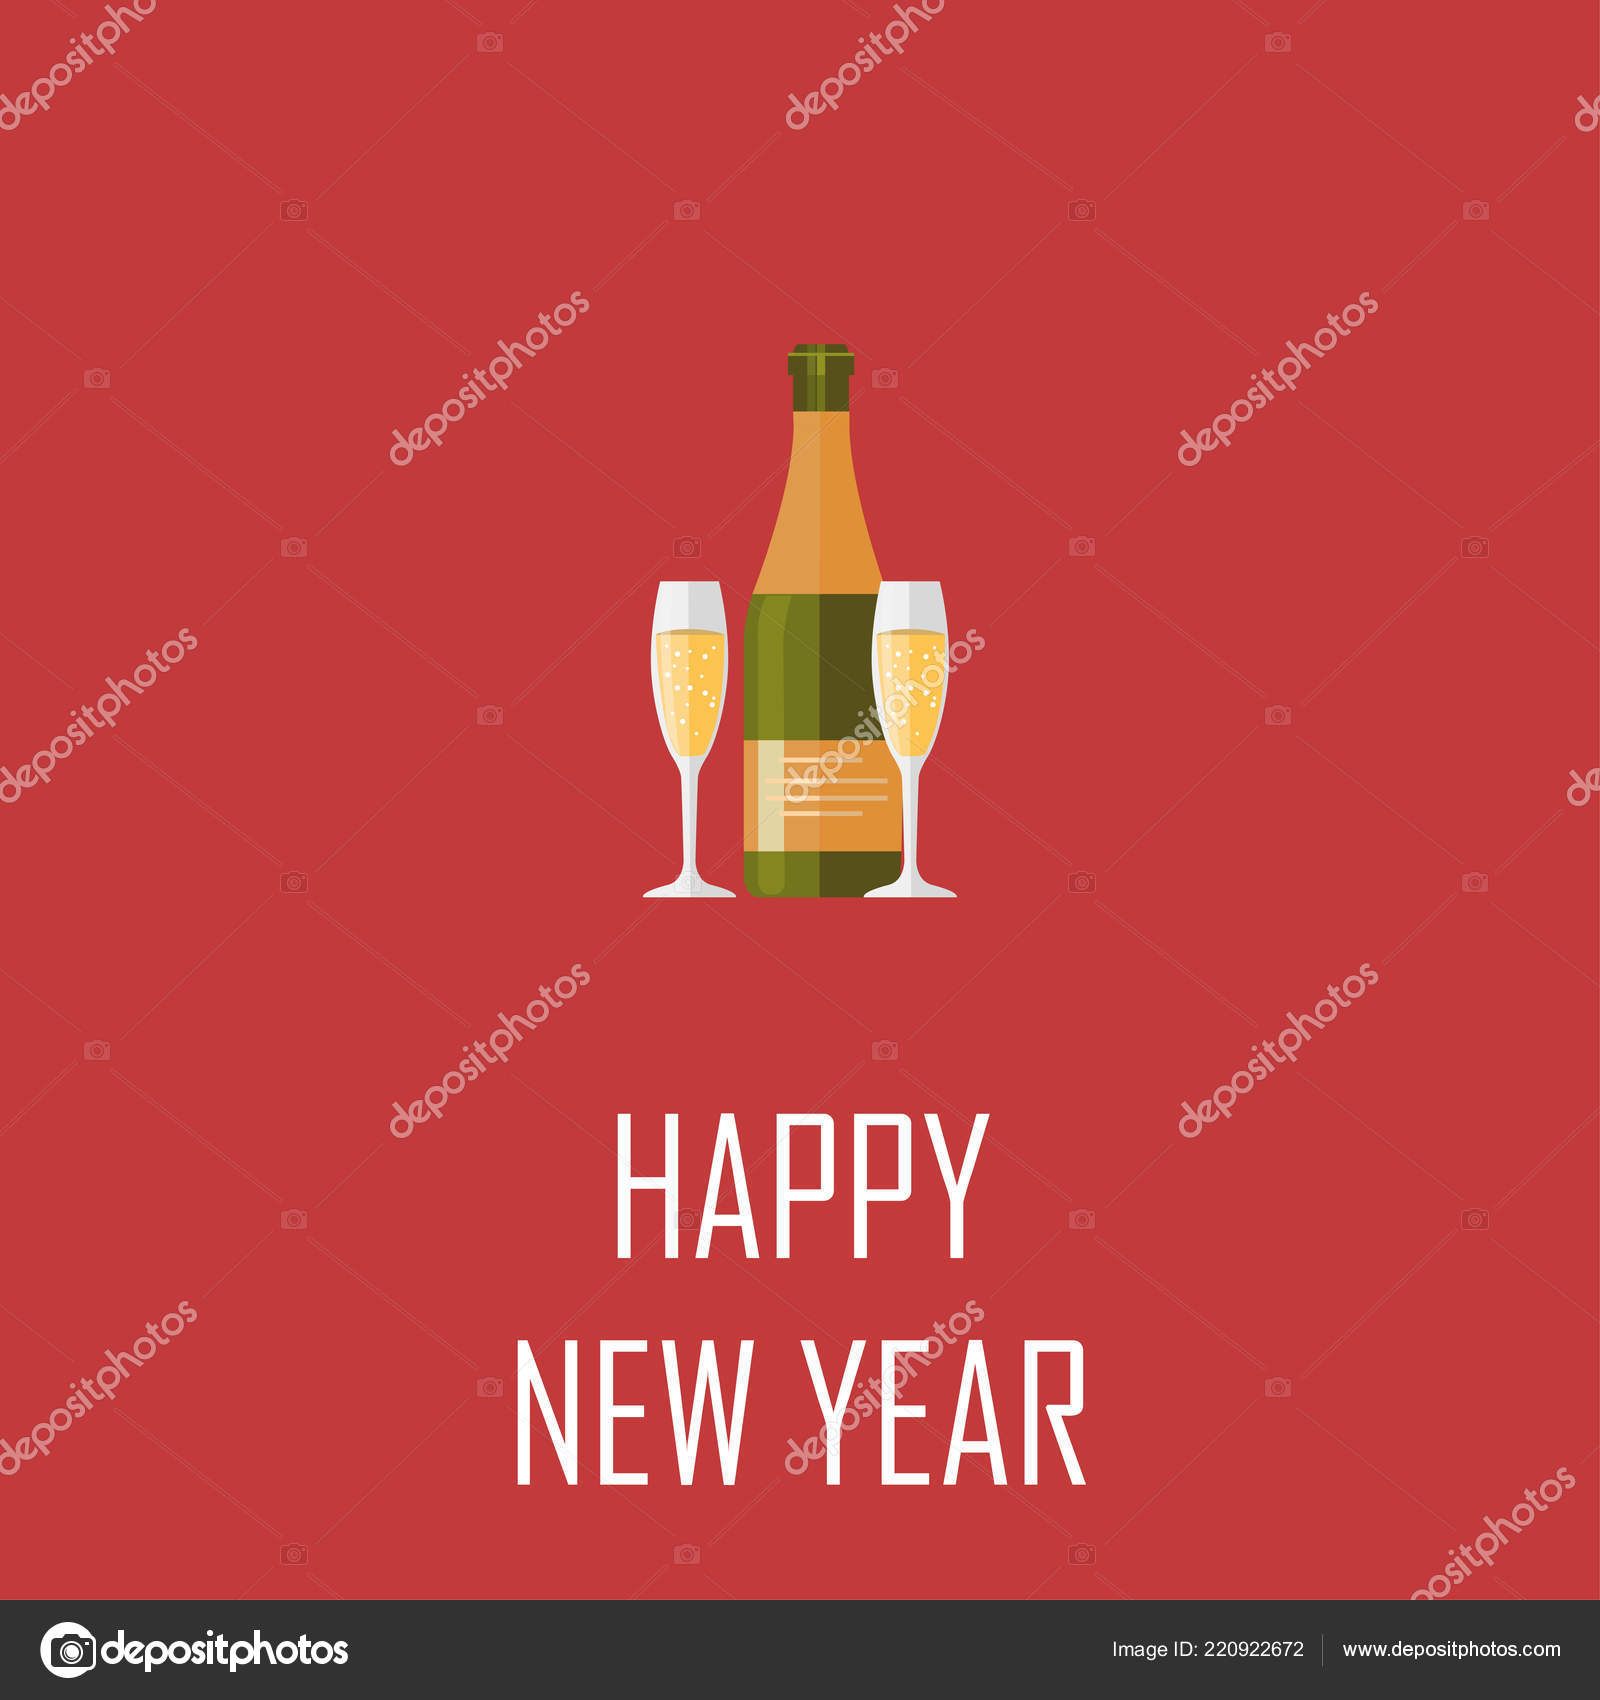 champagne bottle elegant glasses of yellow champagne with bubbles on red background happy new year and